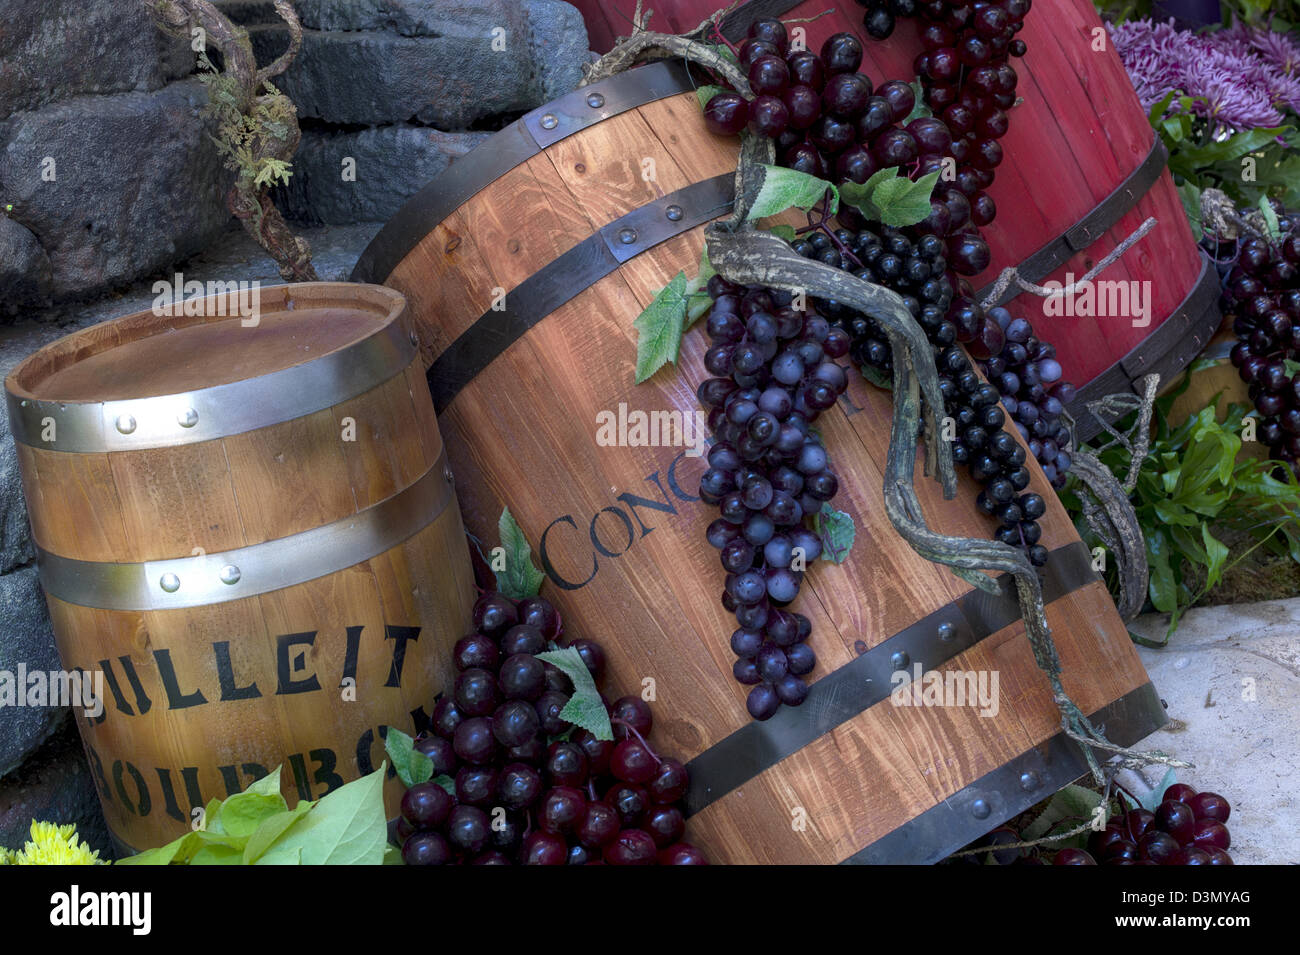 Baril de vin de raisin et l'affichage. Photo Stock